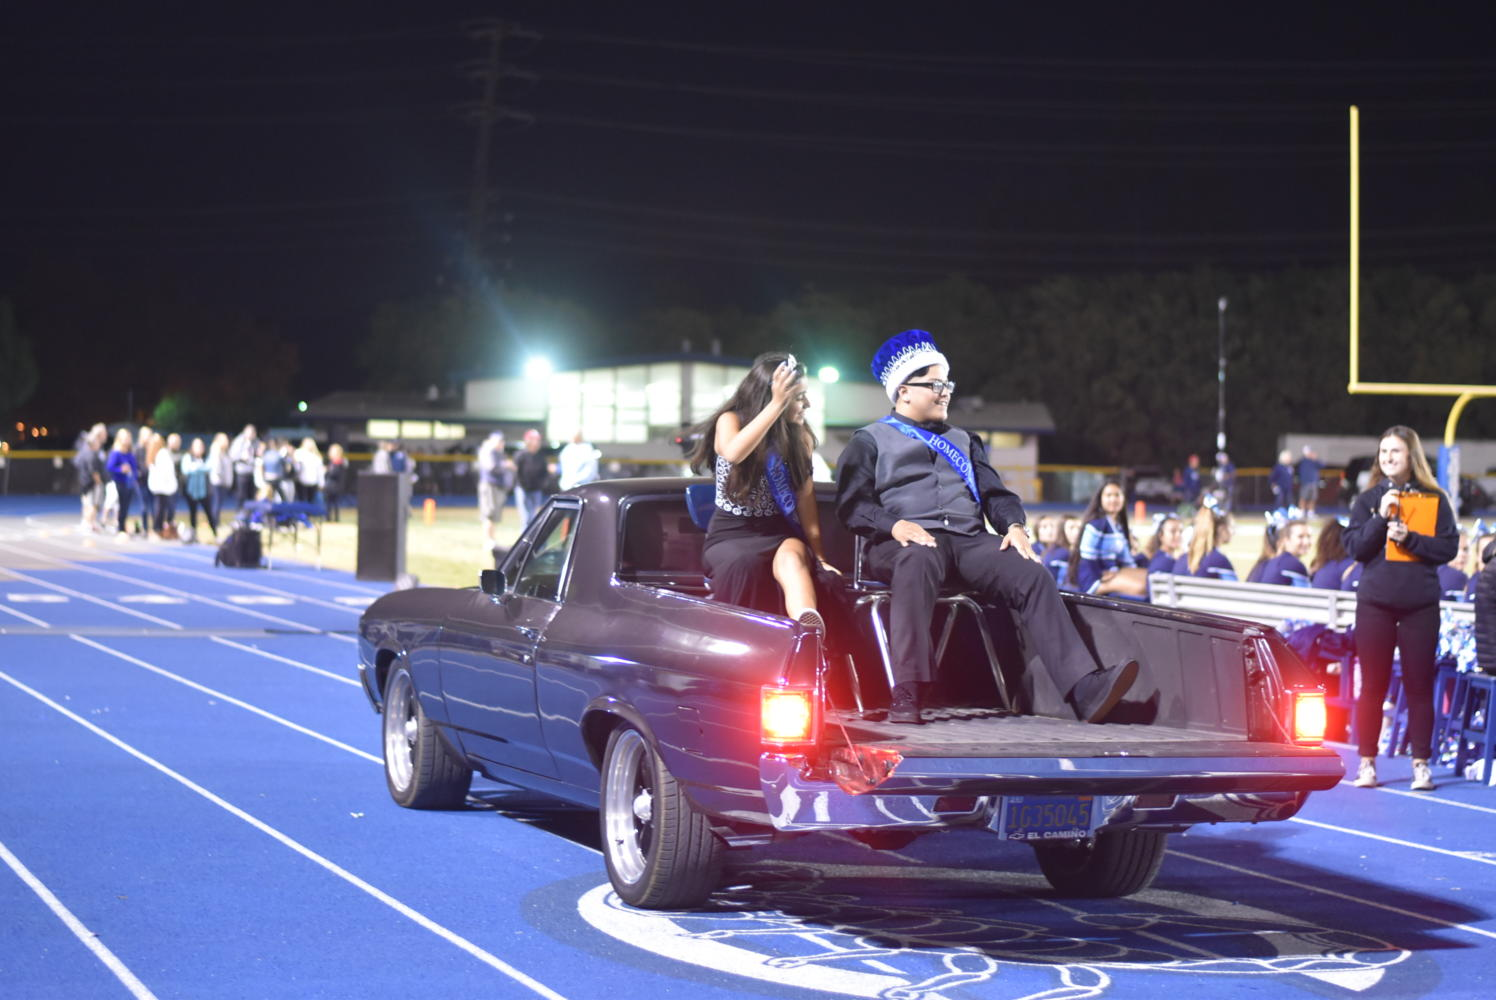 Freshman homecoming princess,Xasha Francisco, and Freshman Homecoming Prince, Fletcher Gravel, wave to their peers during halftime.